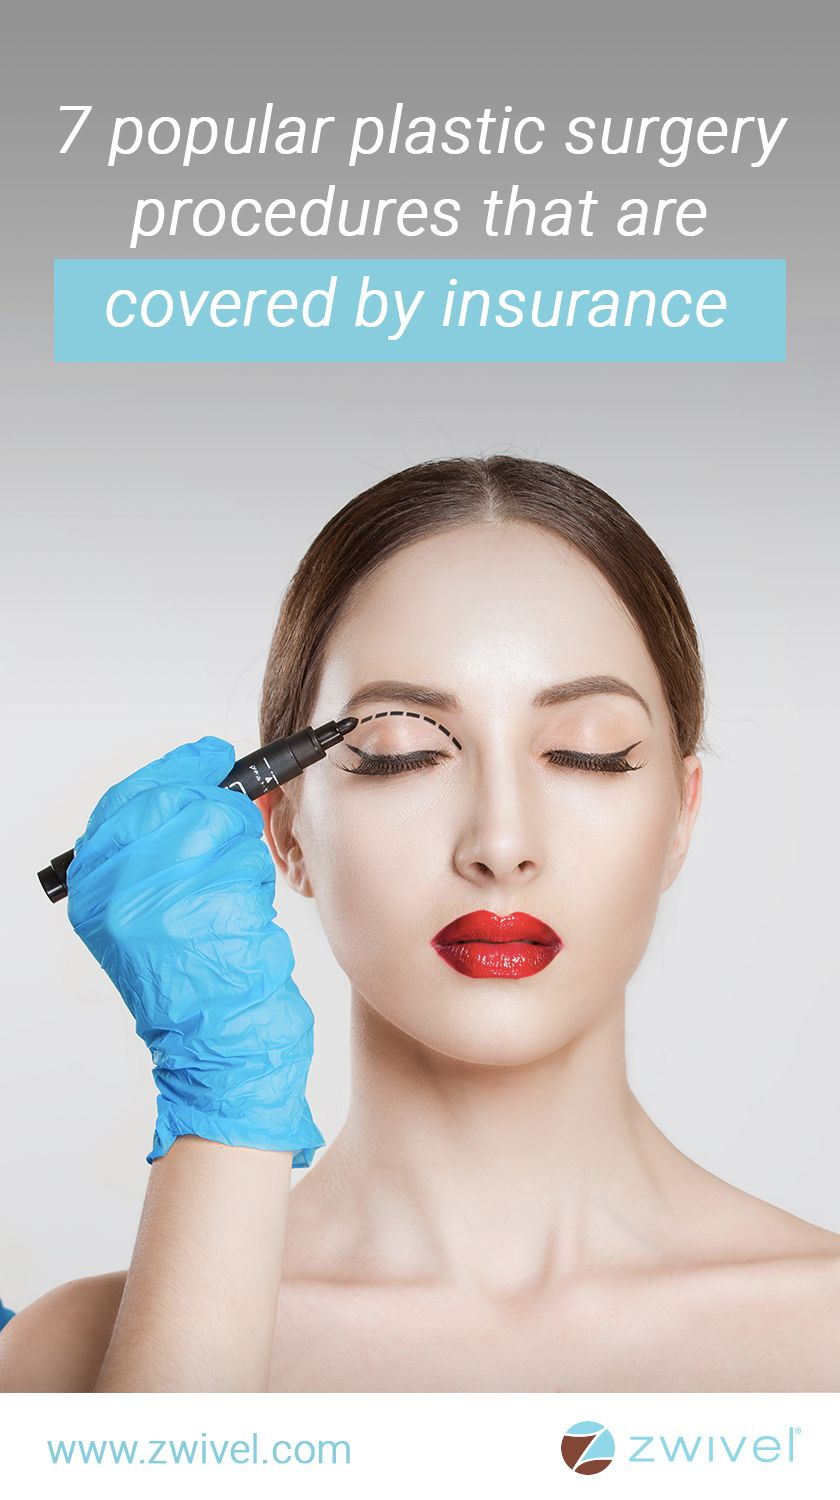 7 popular plastic surgery procedures that are covered by